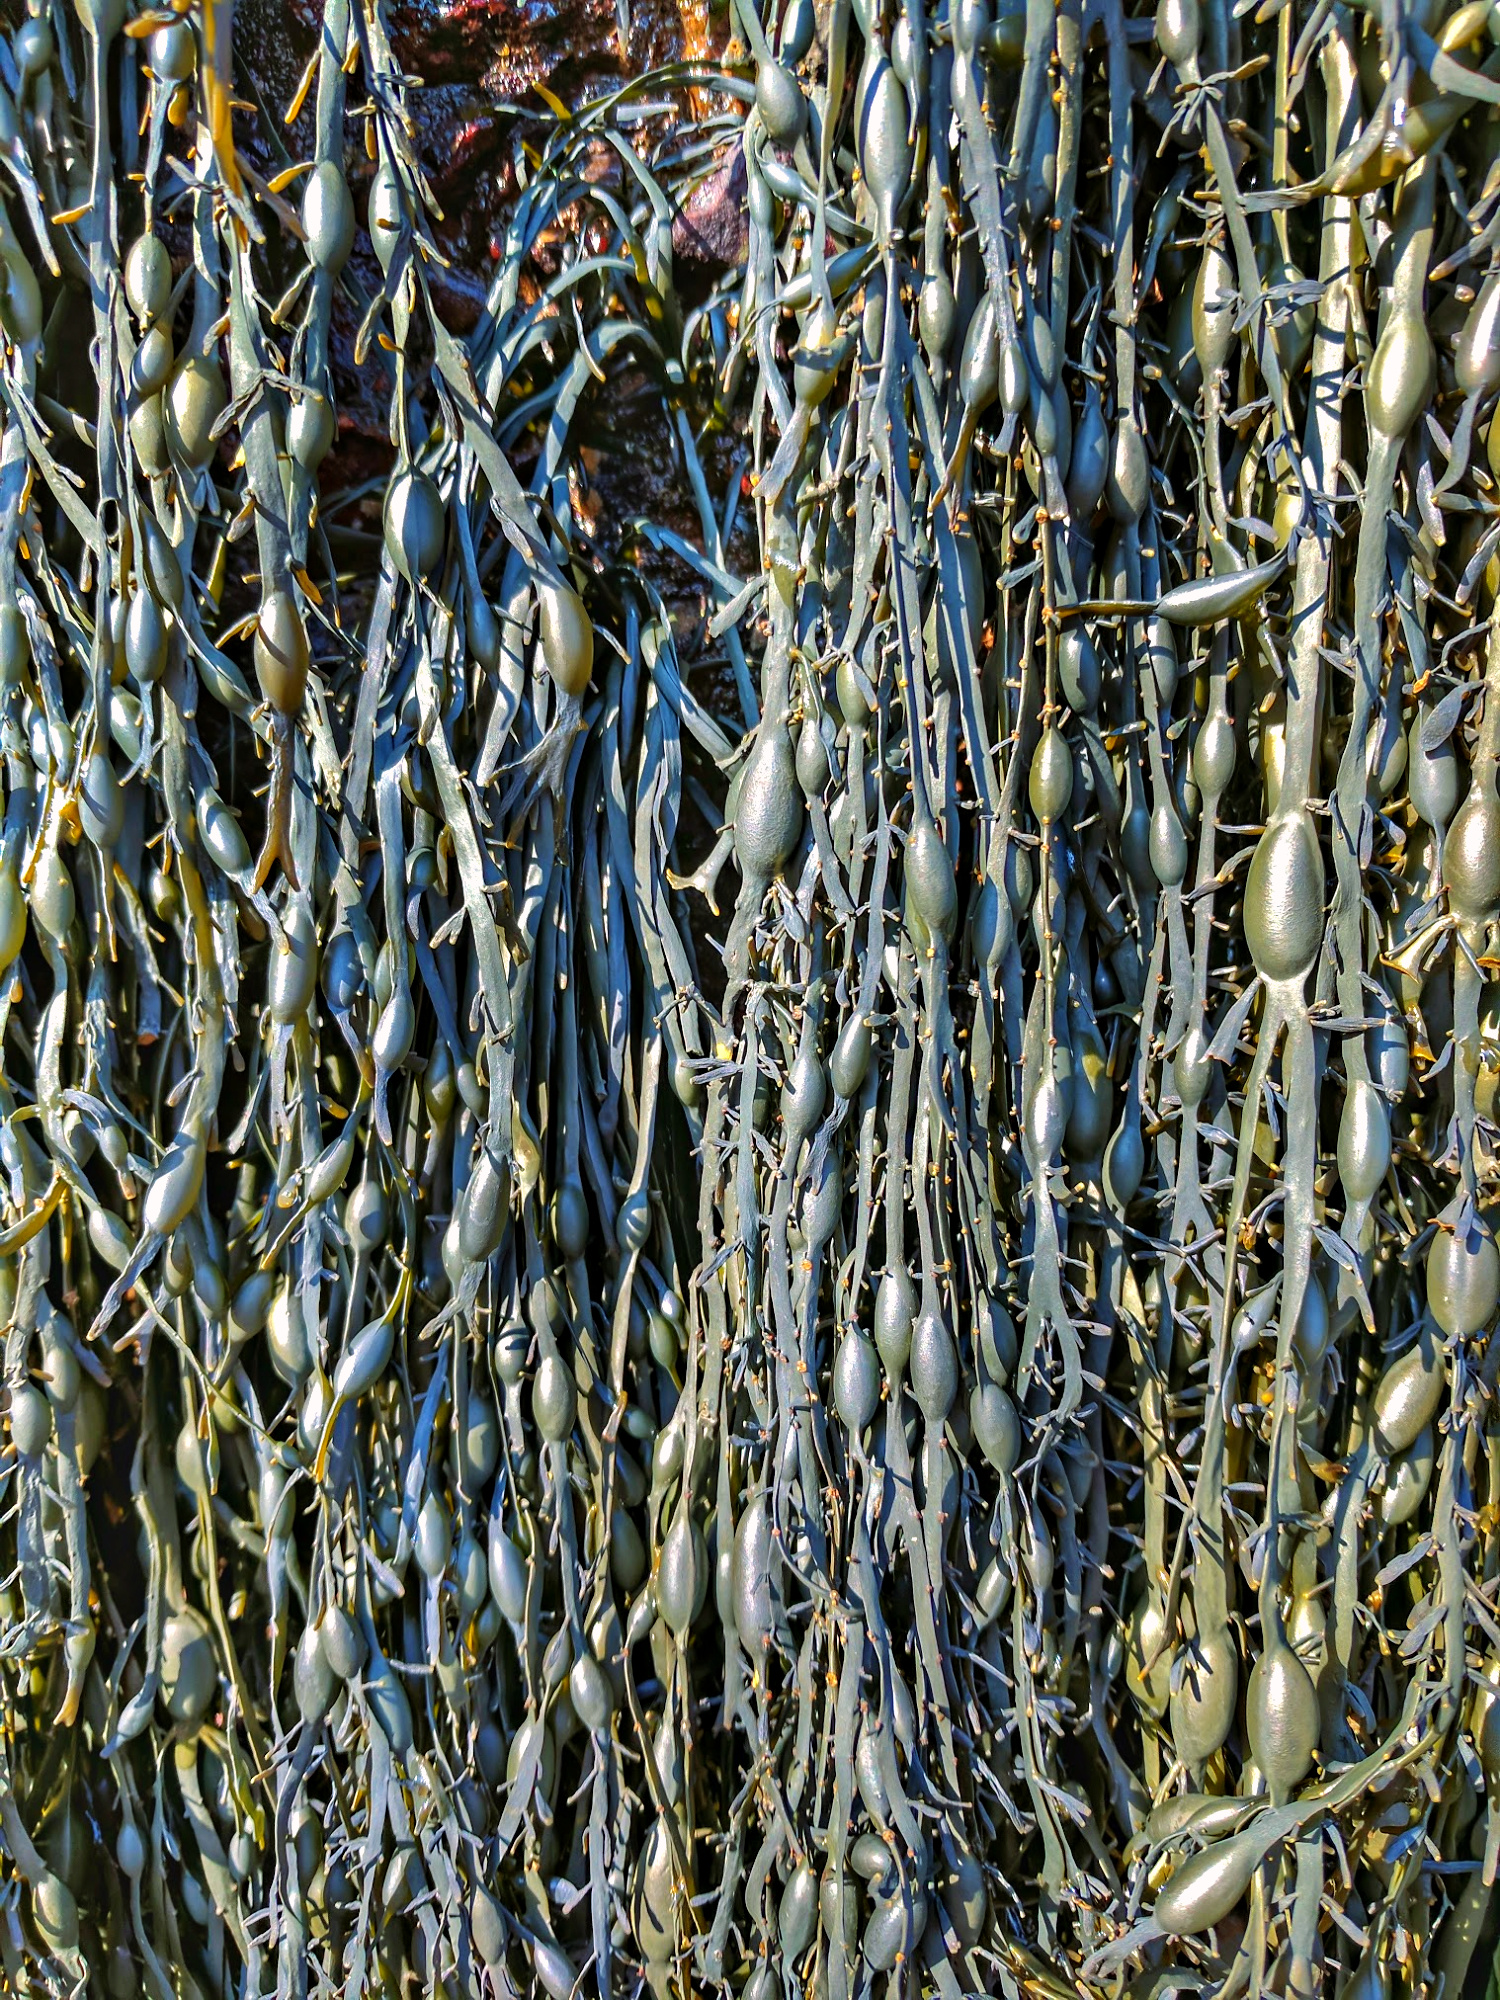 Closeup of the seaweeds at the Hopewell Rocks in New Brunswick.